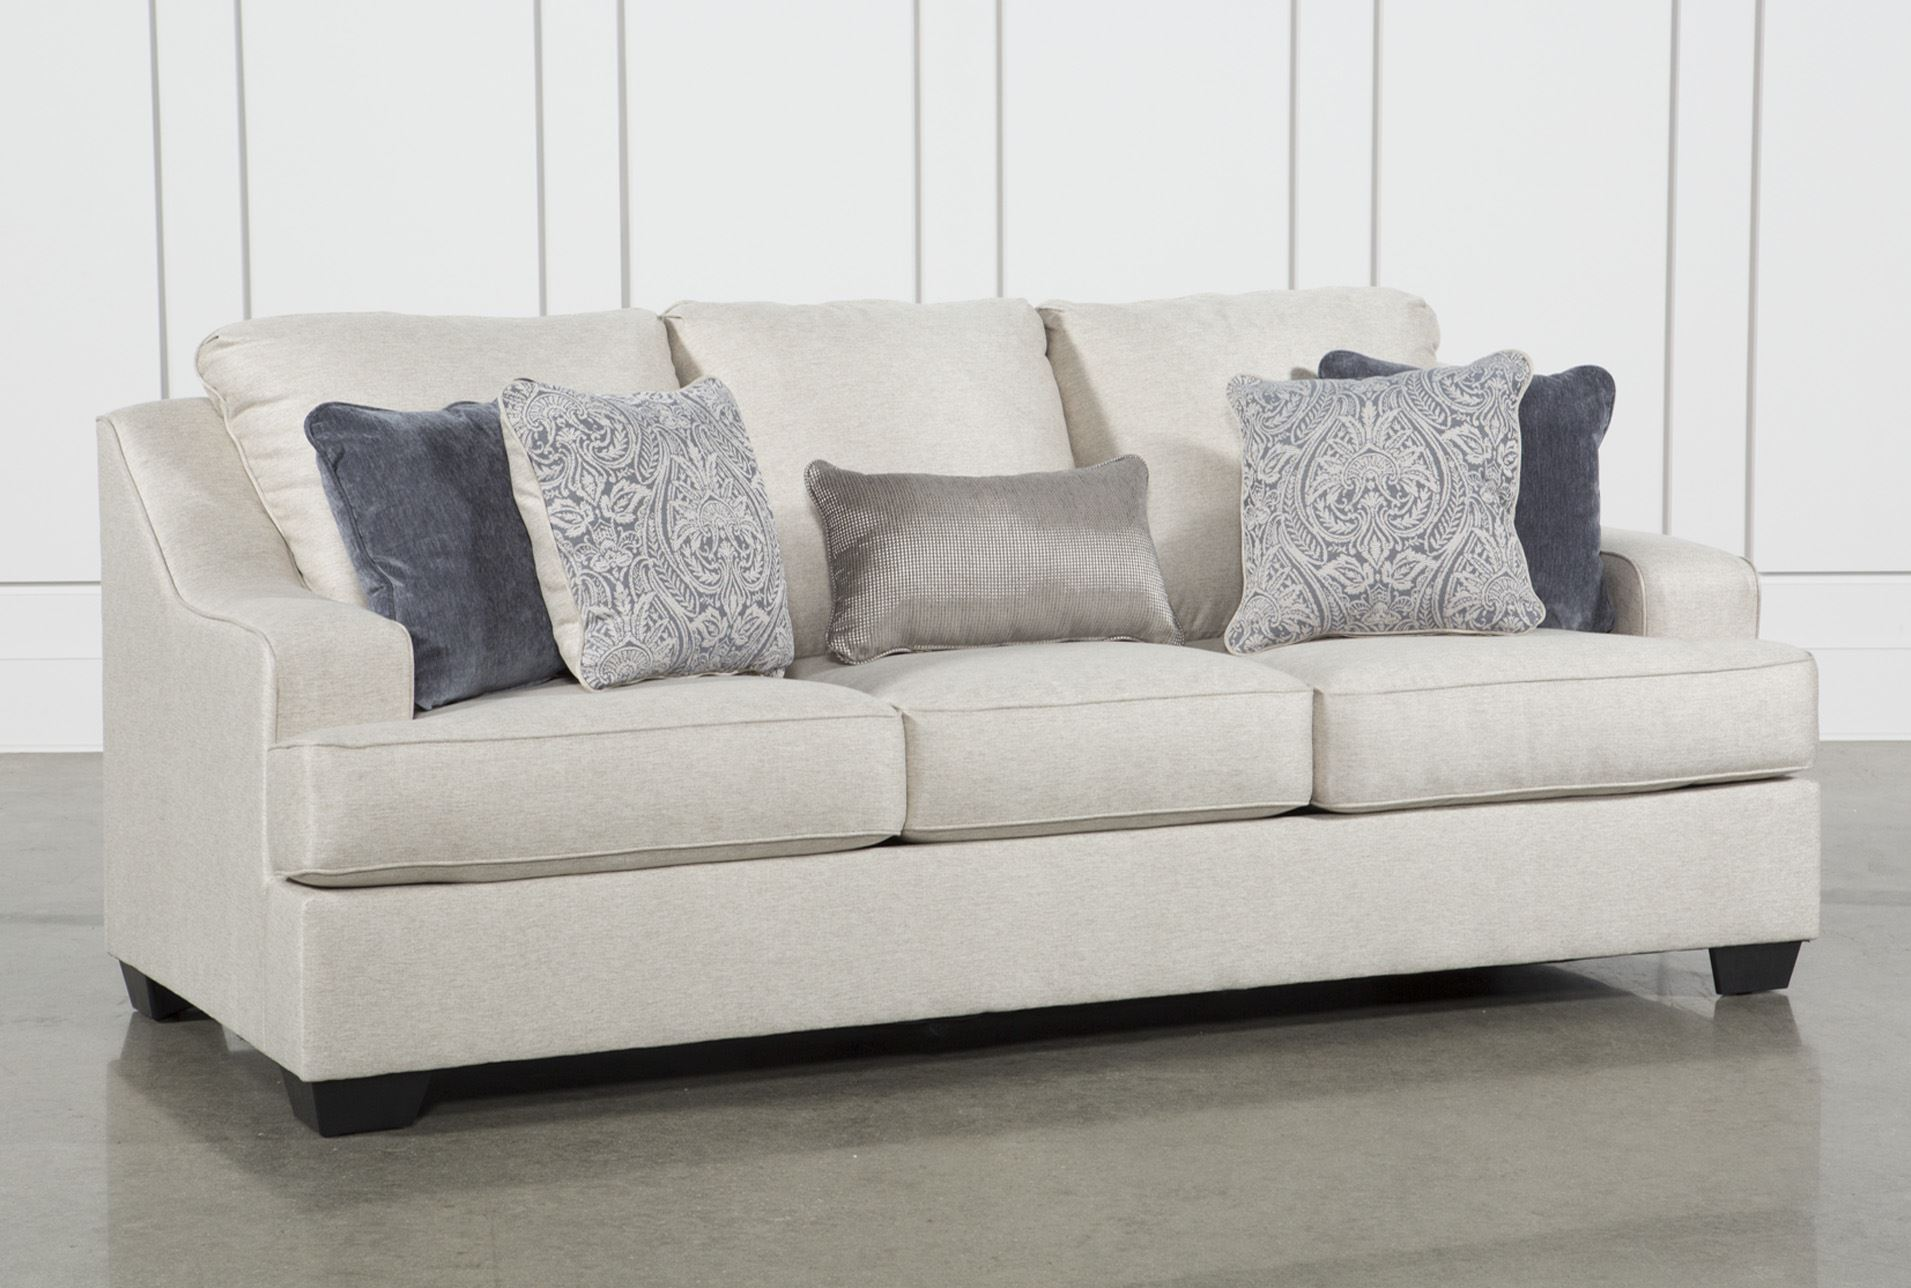 Sofa Bed Couch Sofa Beds Sleeper Sofas Free Assembly With Delivery Living